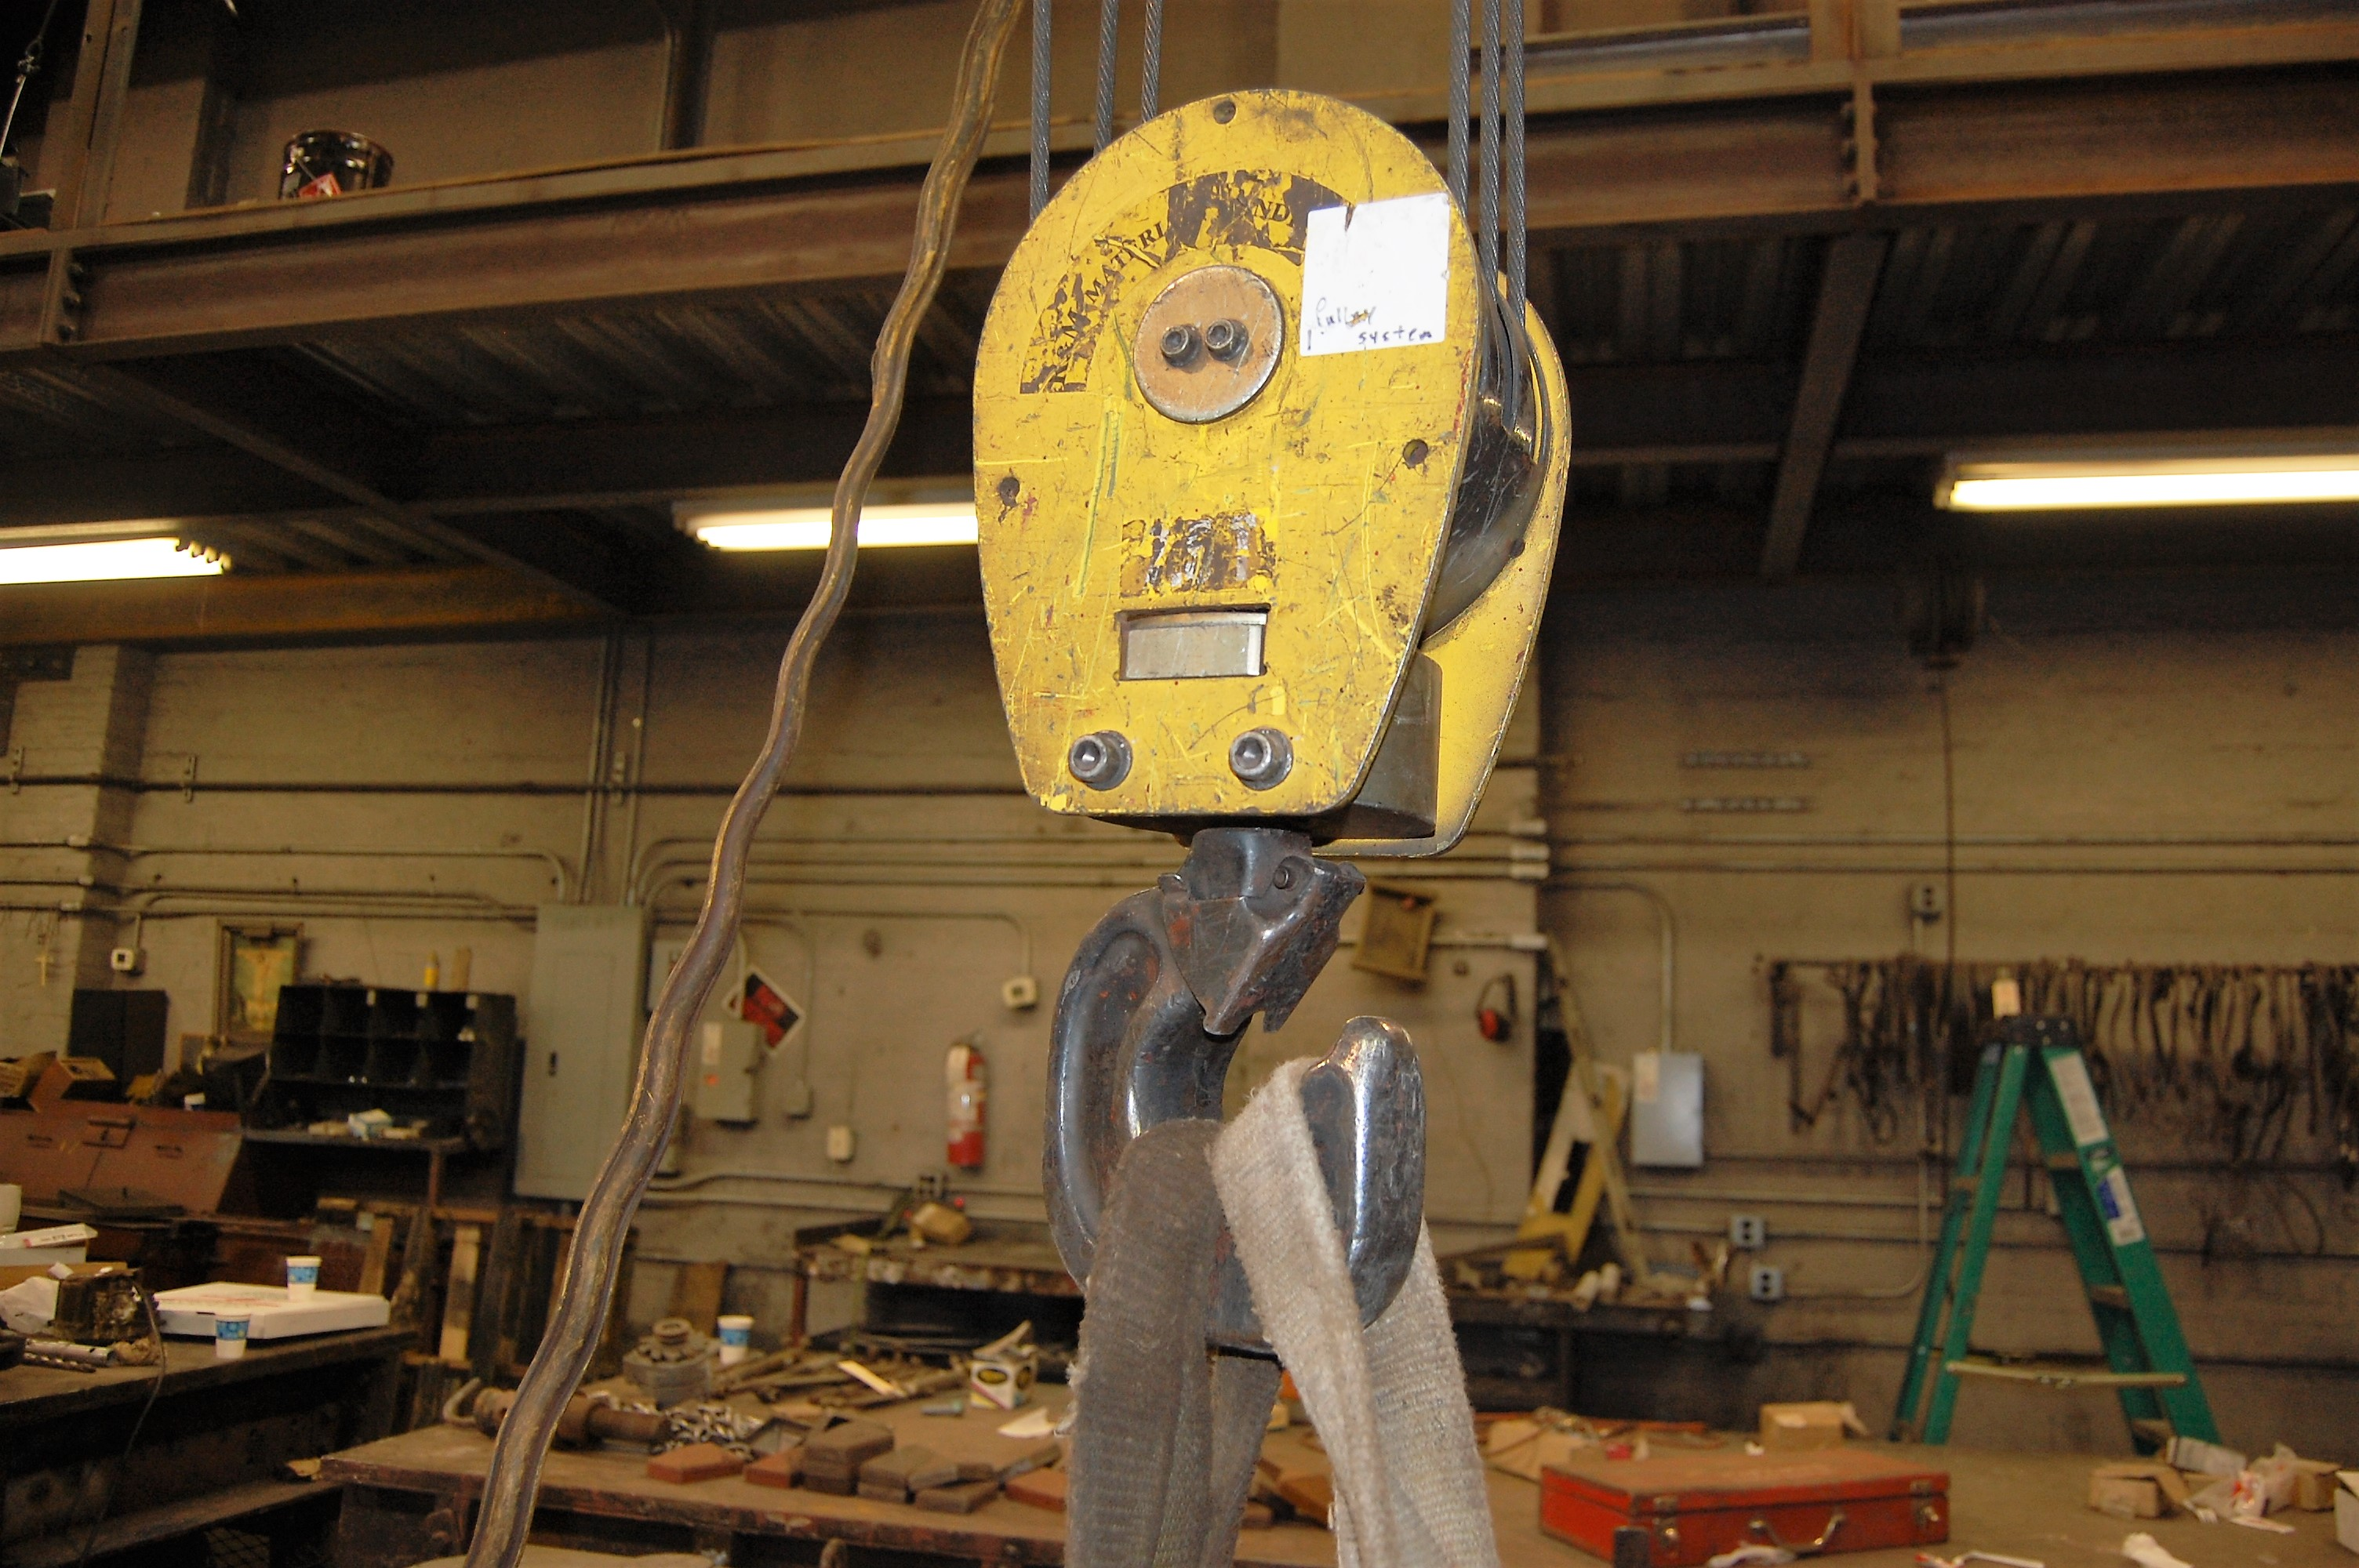 Lot 53 - 7-1/2 TON NORTH AMERICAN OVERHEAD BRIDGE CRANE, TOP RUNNING, 55' SPAN, 80 FPM, R&M HOIST(2007)